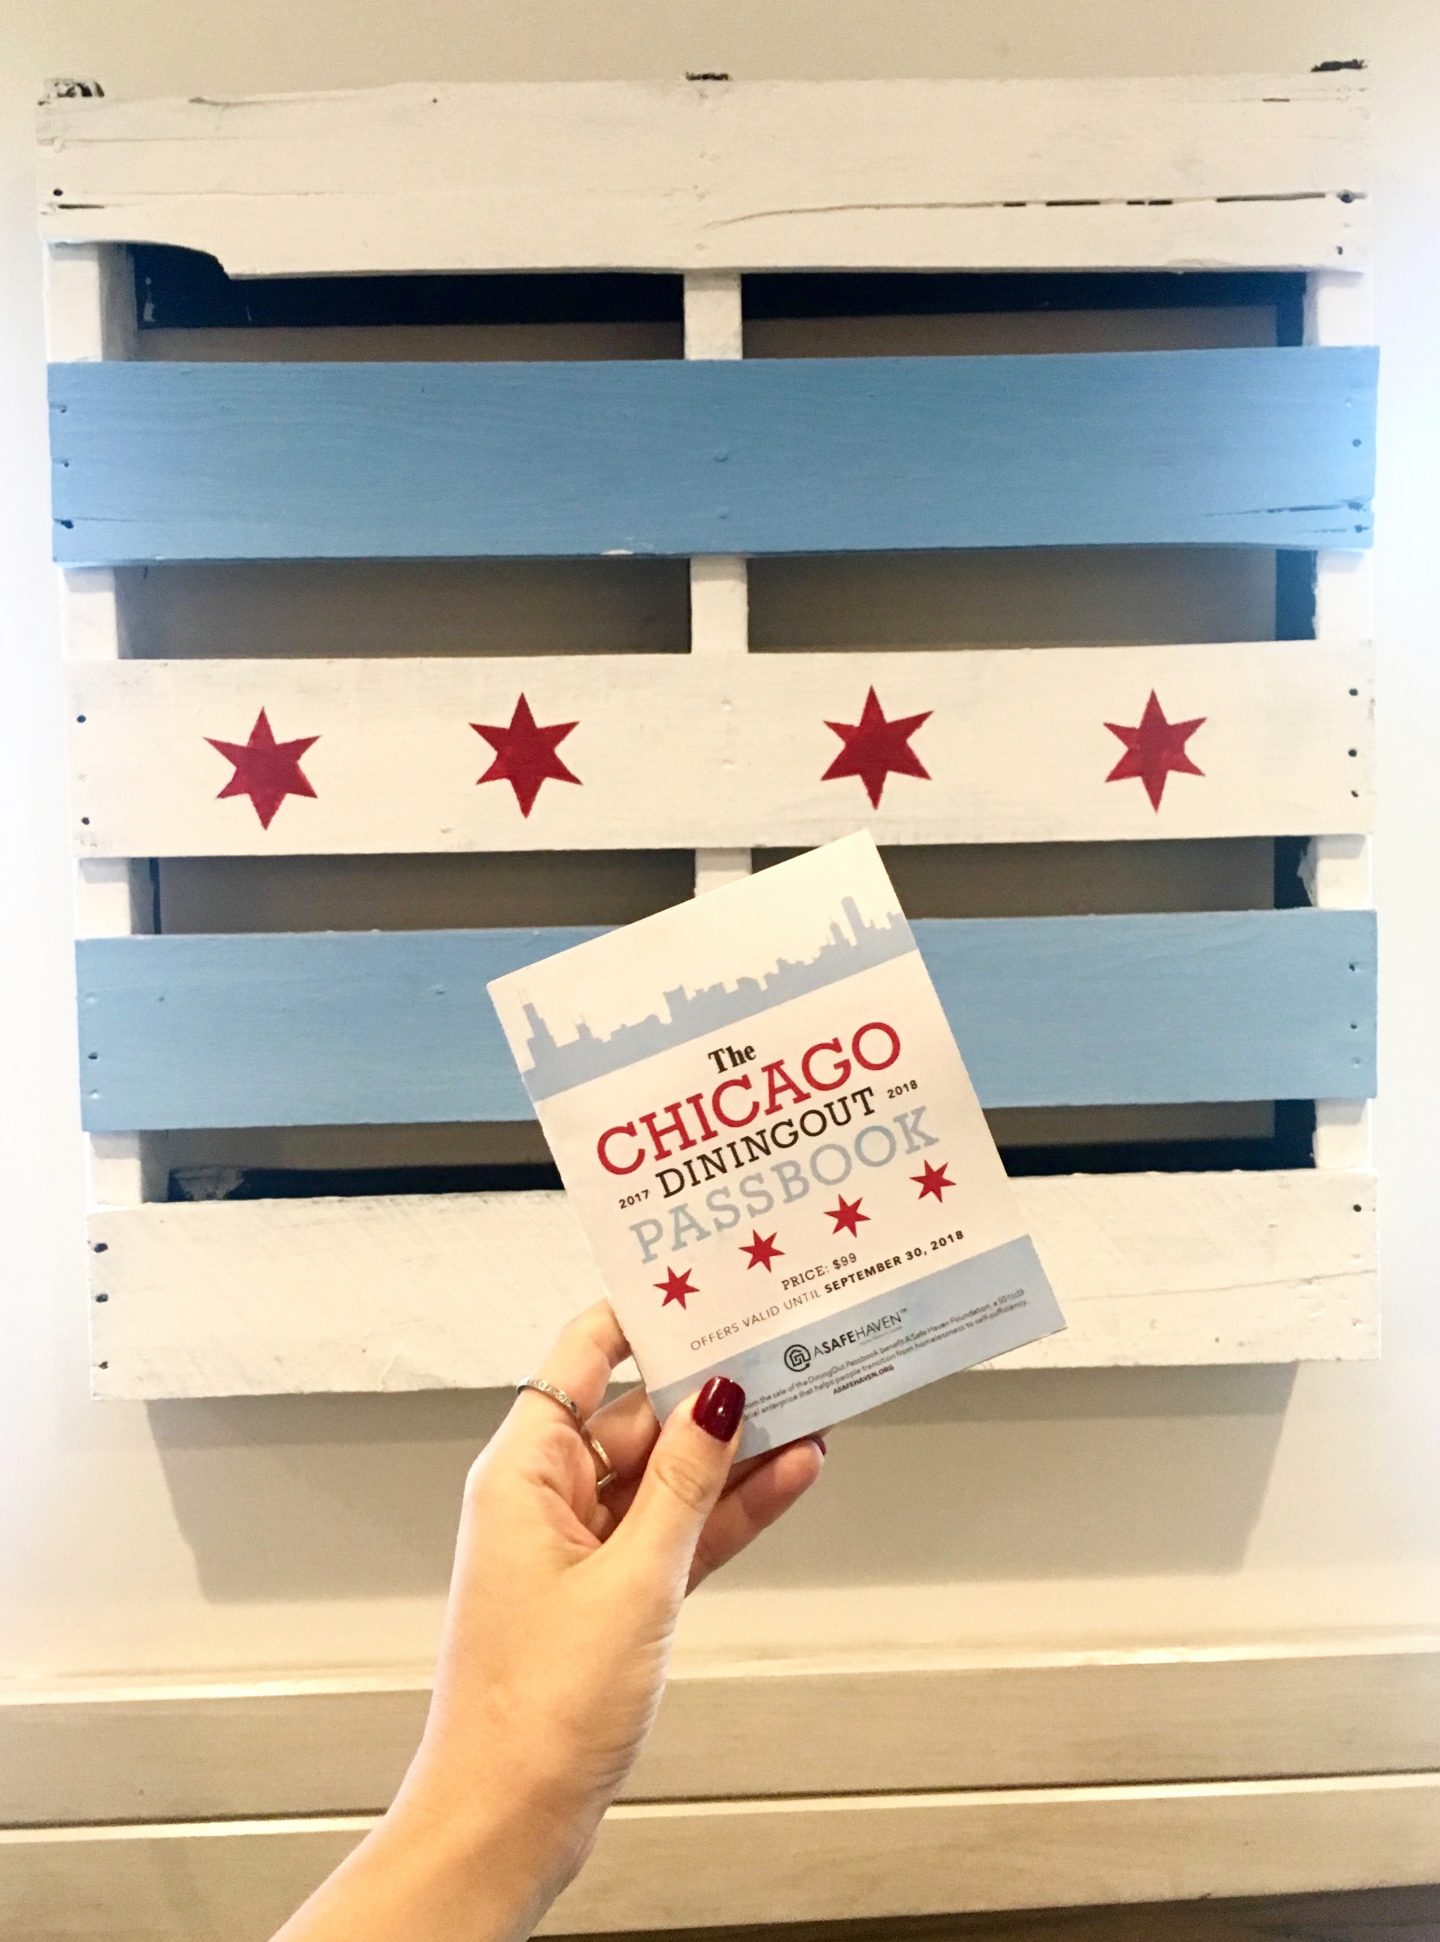 A Special Offer For My Chicago Friends The Bellezza Corner By Amanda Florian